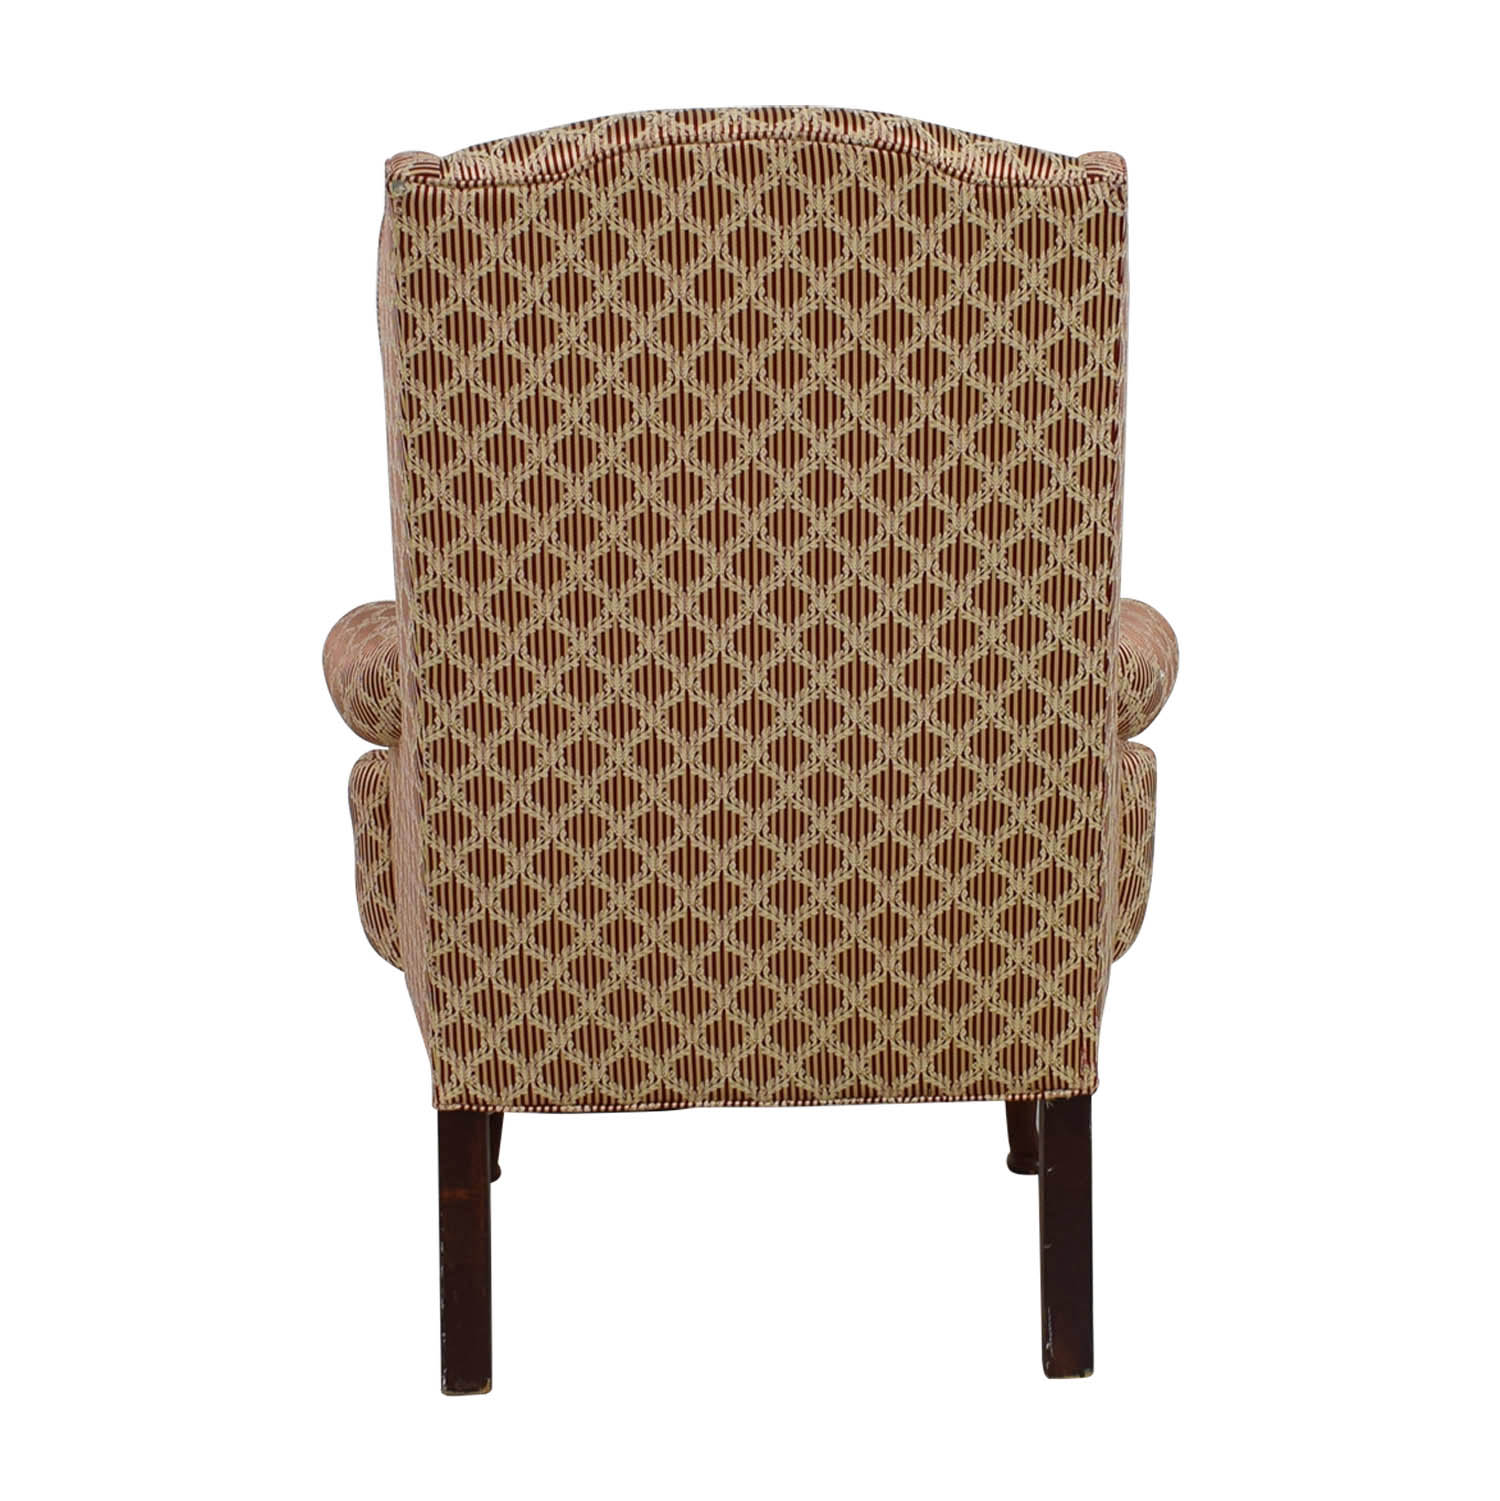 Vintage Red and Beige Wingback Accent Chair / Chairs